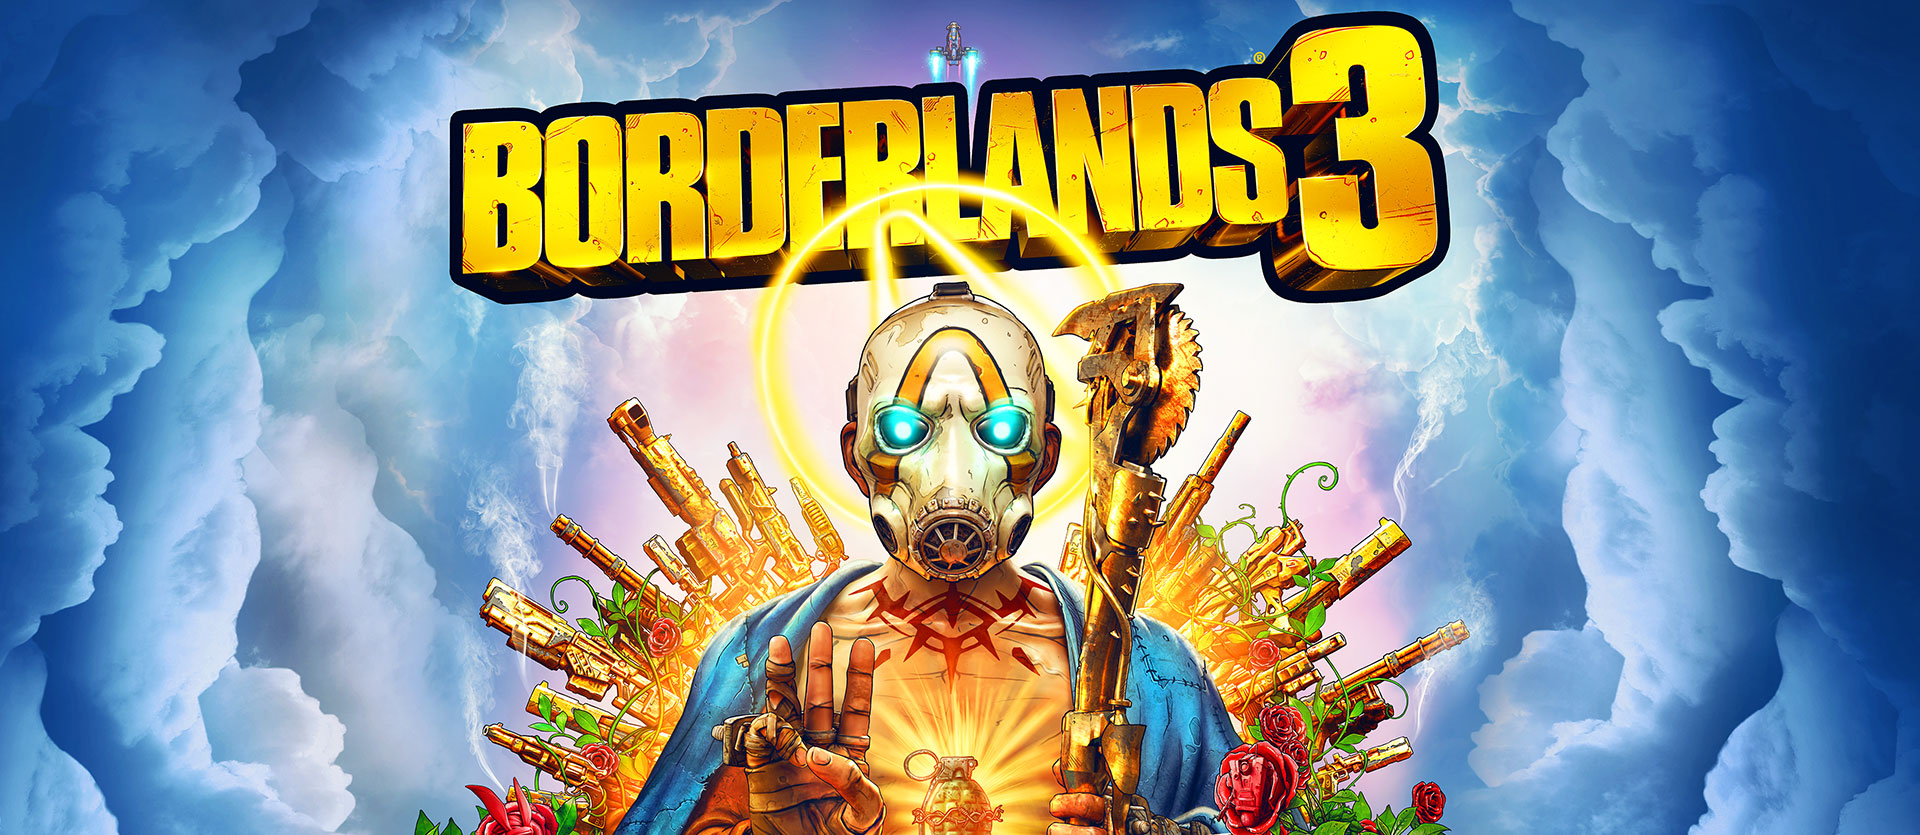 Borderlands 3, A psycho character holds 3 fingers up as he sits on a throne of guns